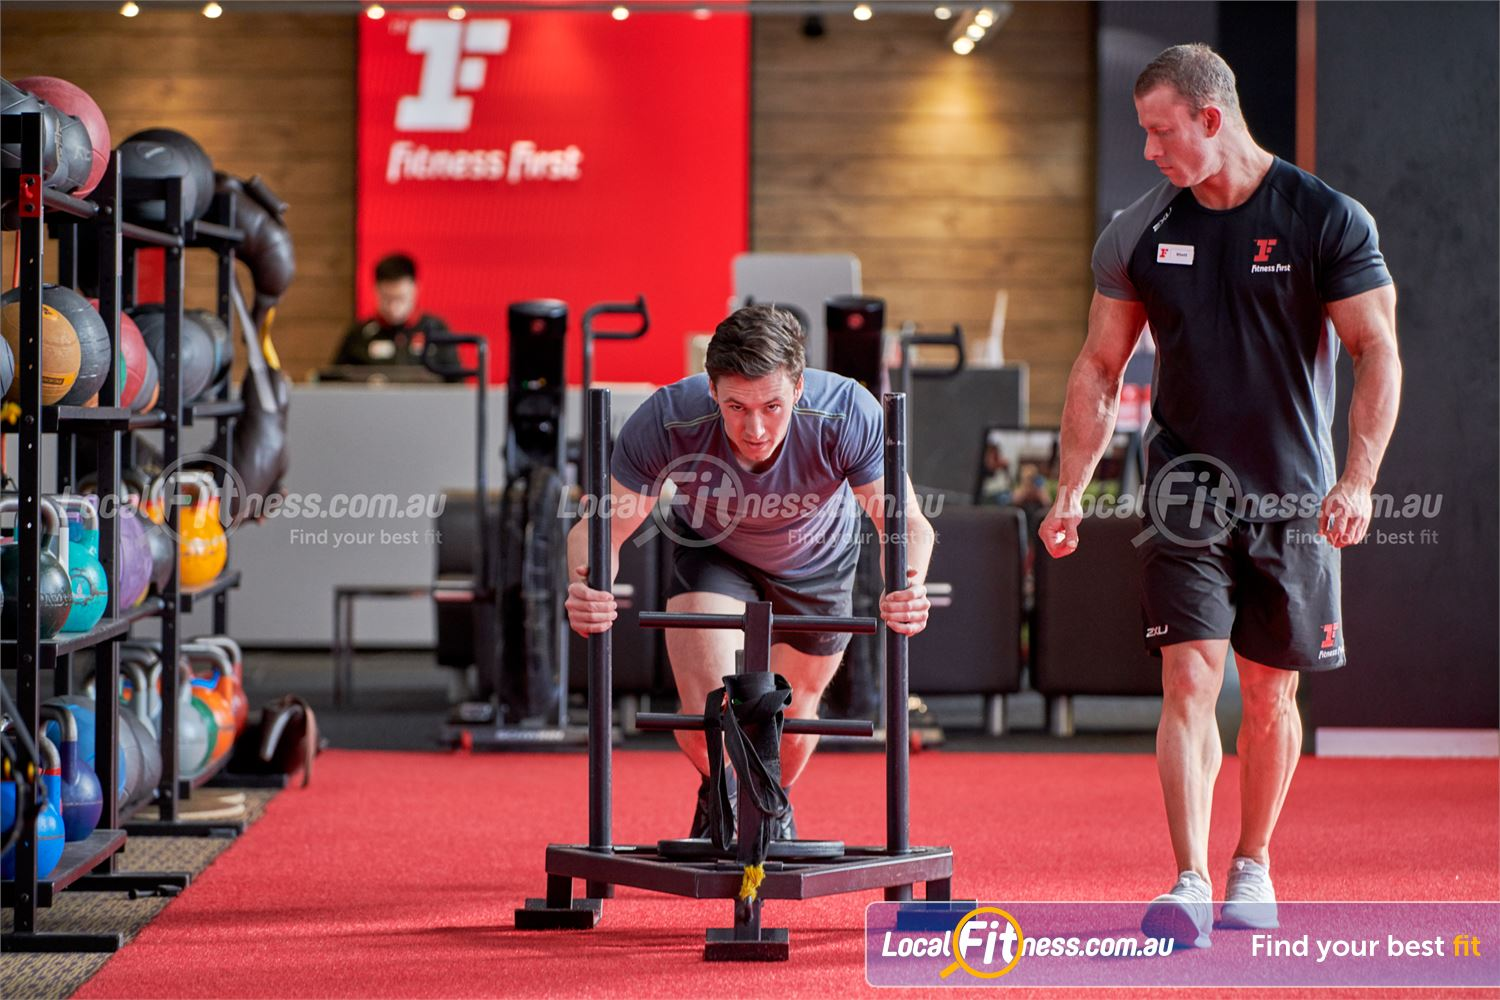 Fitness First Near Glenhaven Join our range of popular freestyle strength classes.